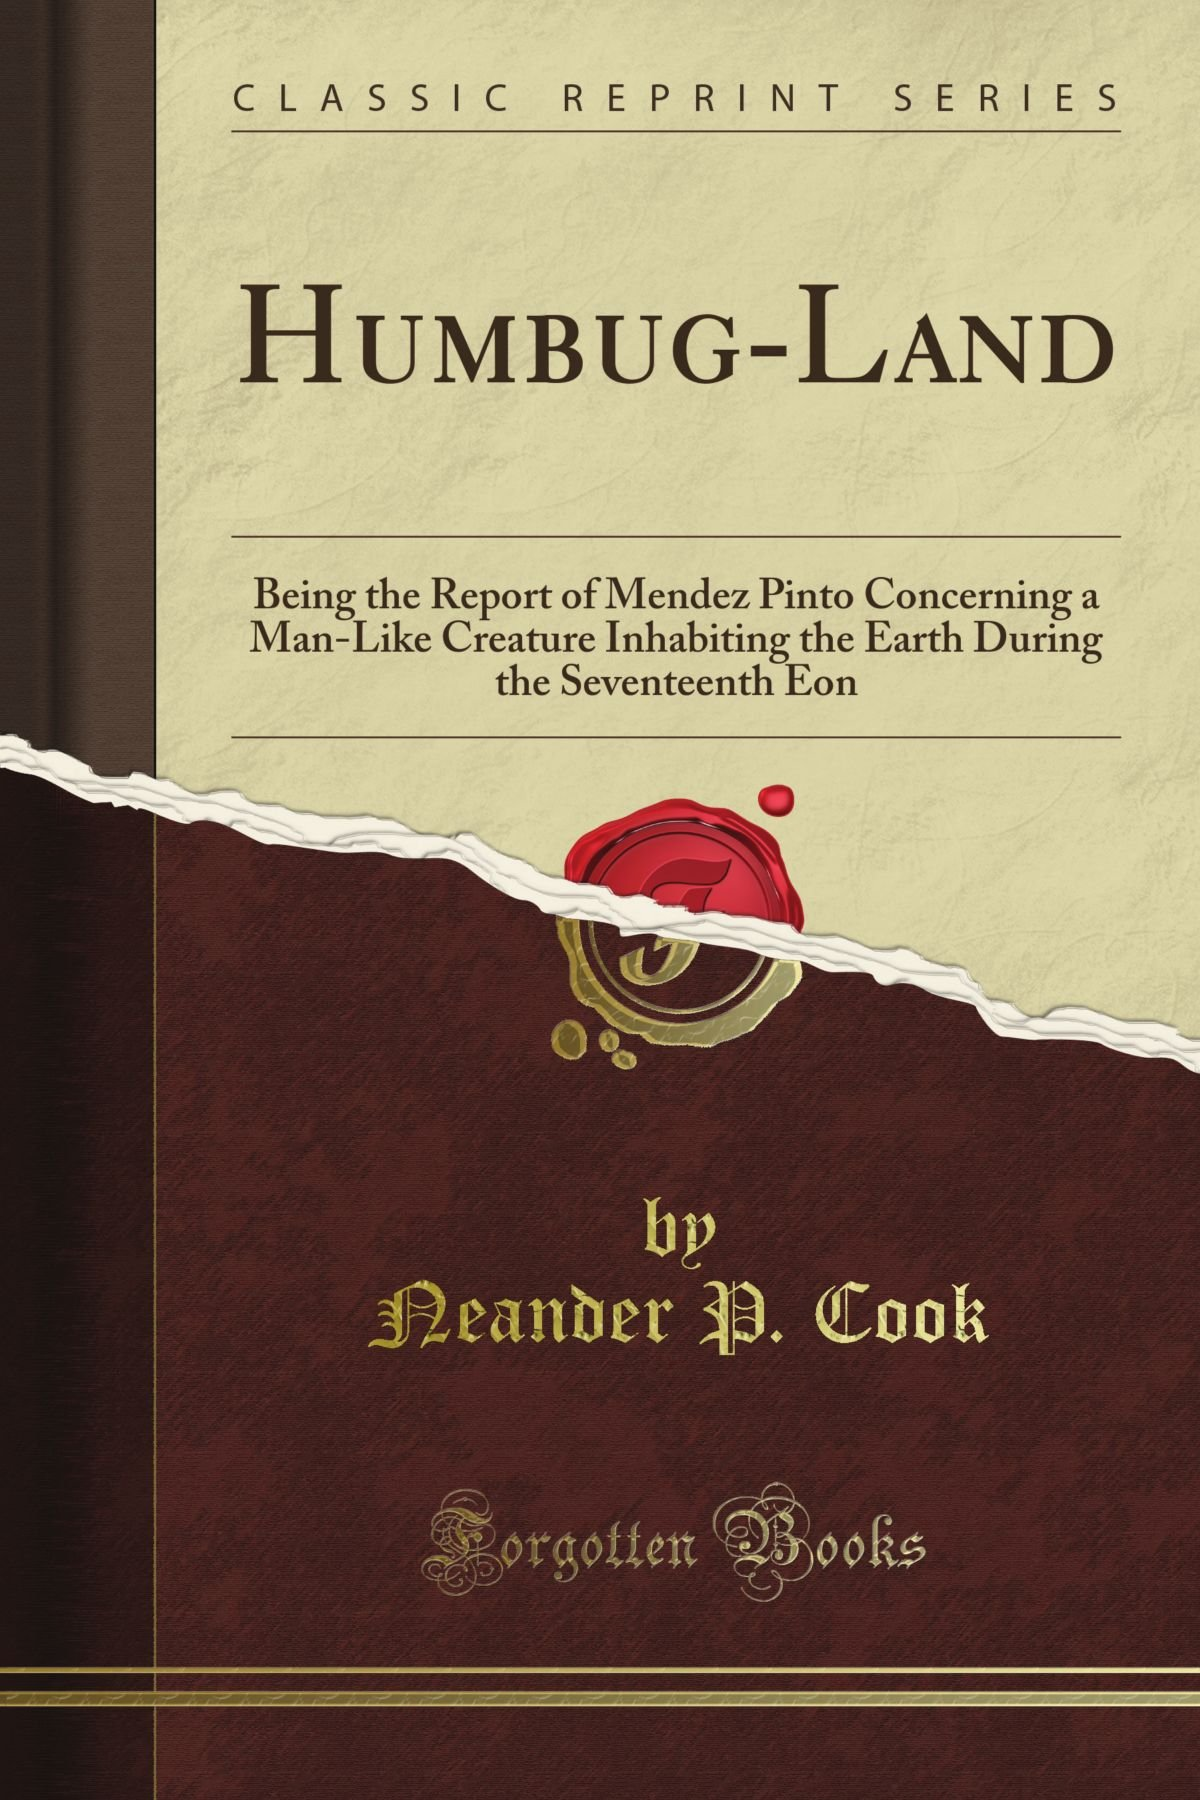 Read Online Humbug-Land: Being the Report of Mendez Pinto Concerning a Man-Like Creature Inhabiting the Earth During the Seventeenth Eon (Classic Reprint) ebook